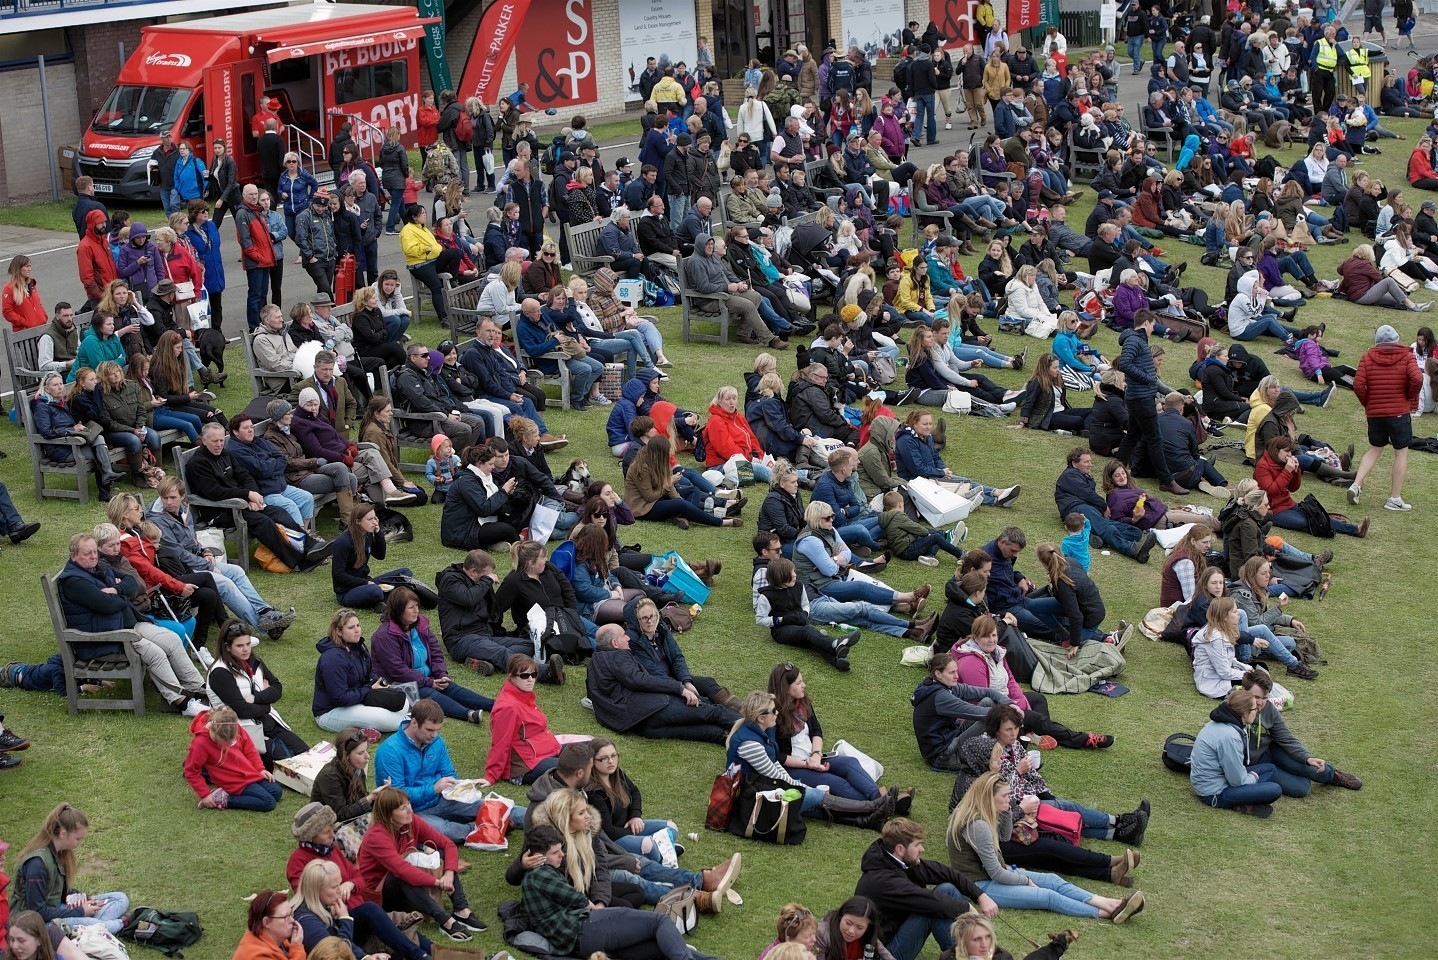 royal-highland-show-agricultural-65-million-economy